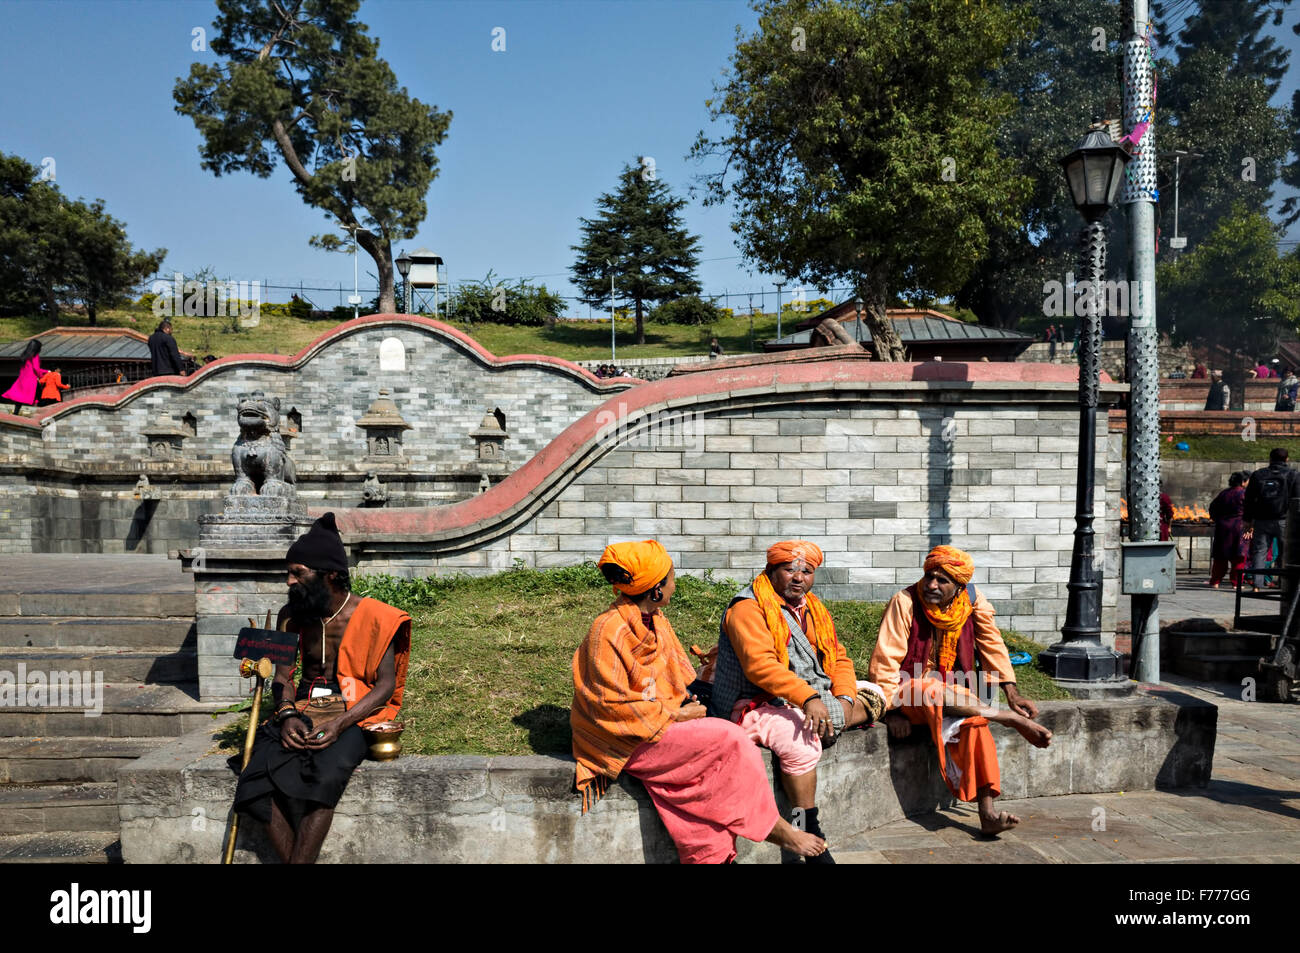 sadhus resting and chatting at Pashupatinath temple complex in Kathmandu, Nepal - Stock Image